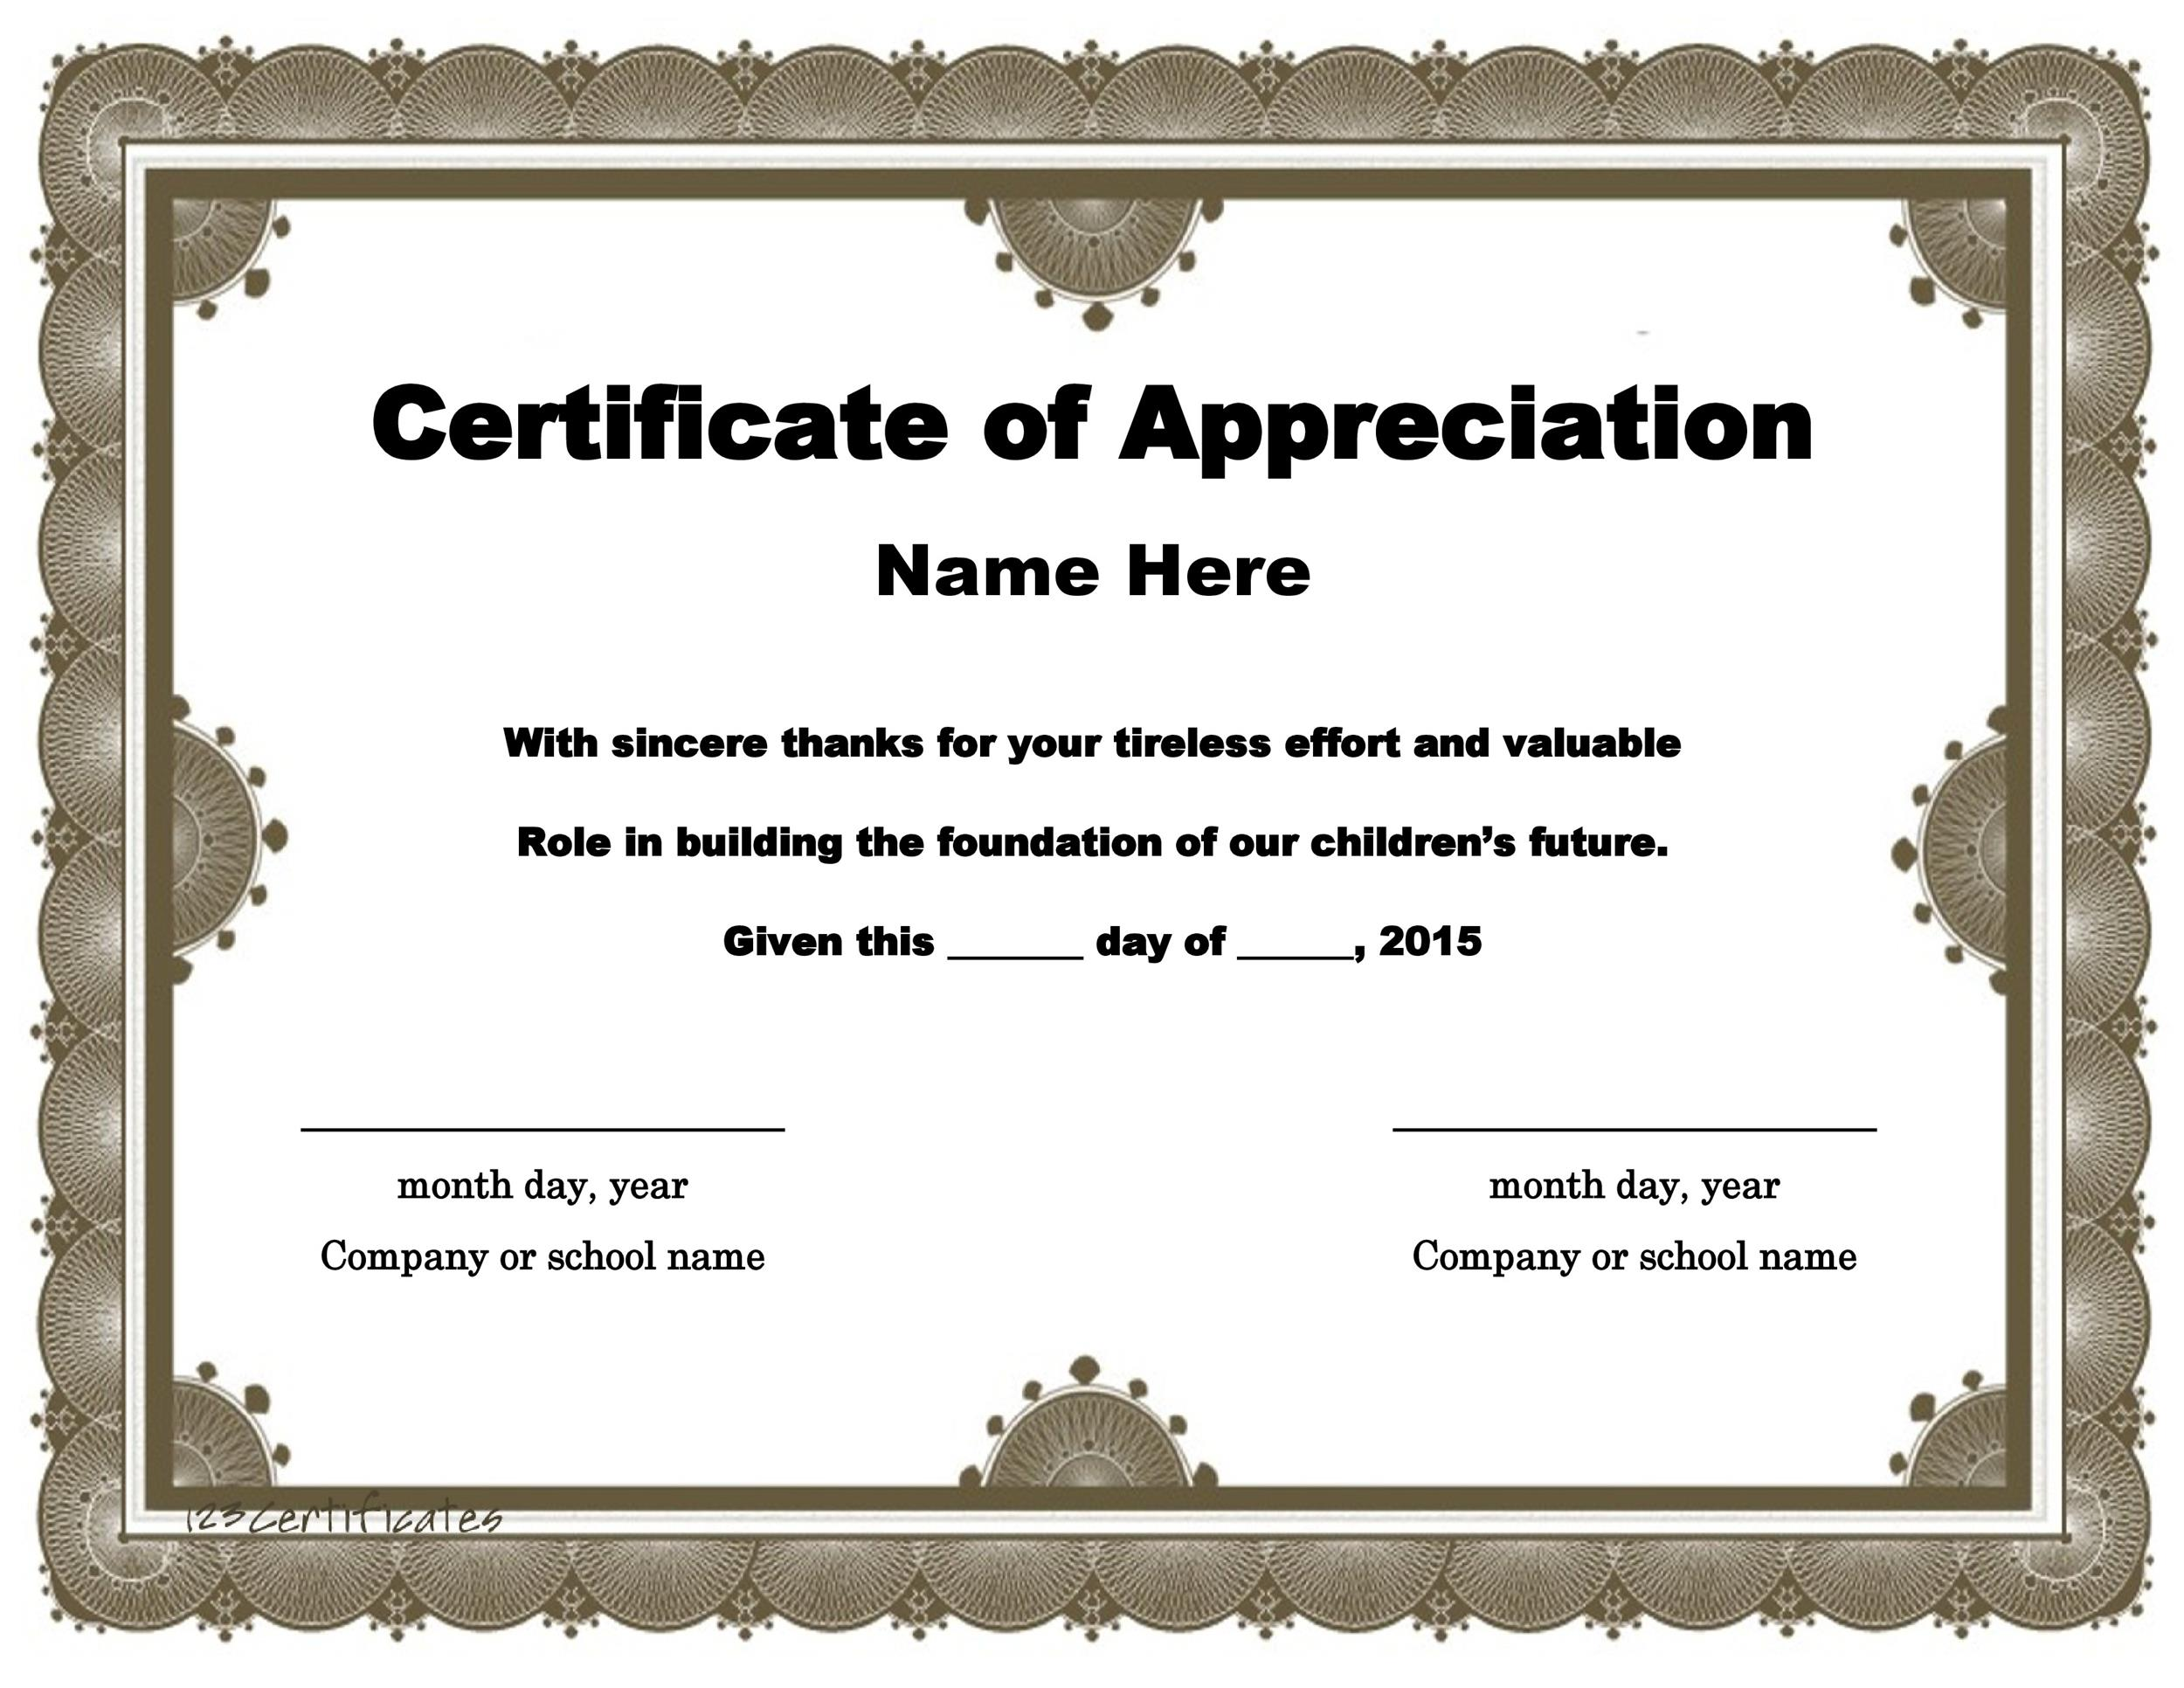 free certificate of appreciation 03 printable certificate - Free Certificate Templates For Word Download